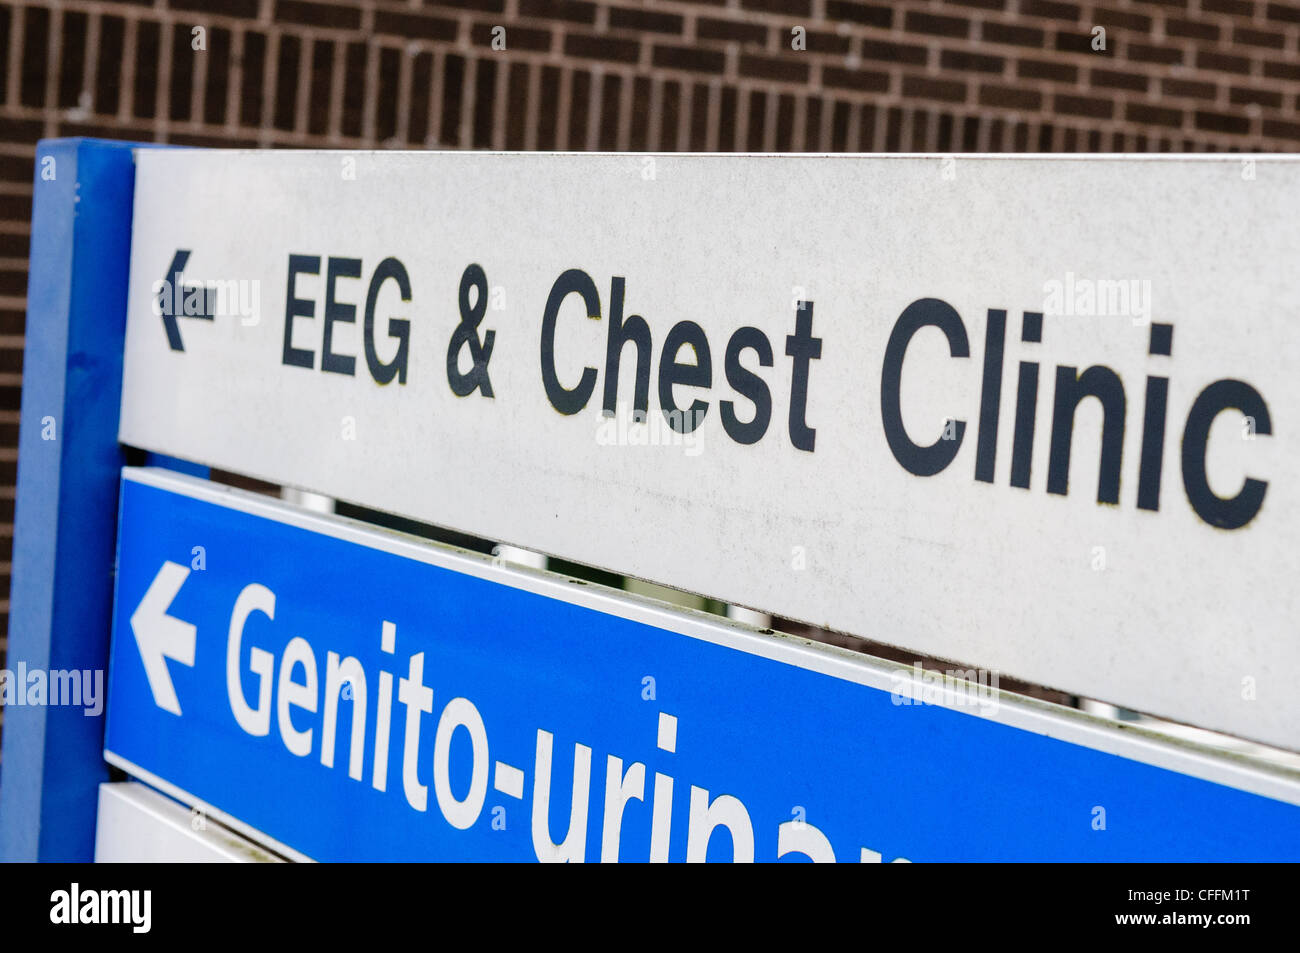 Sign at hospital for EEG and Chest Clinic - Stock Image